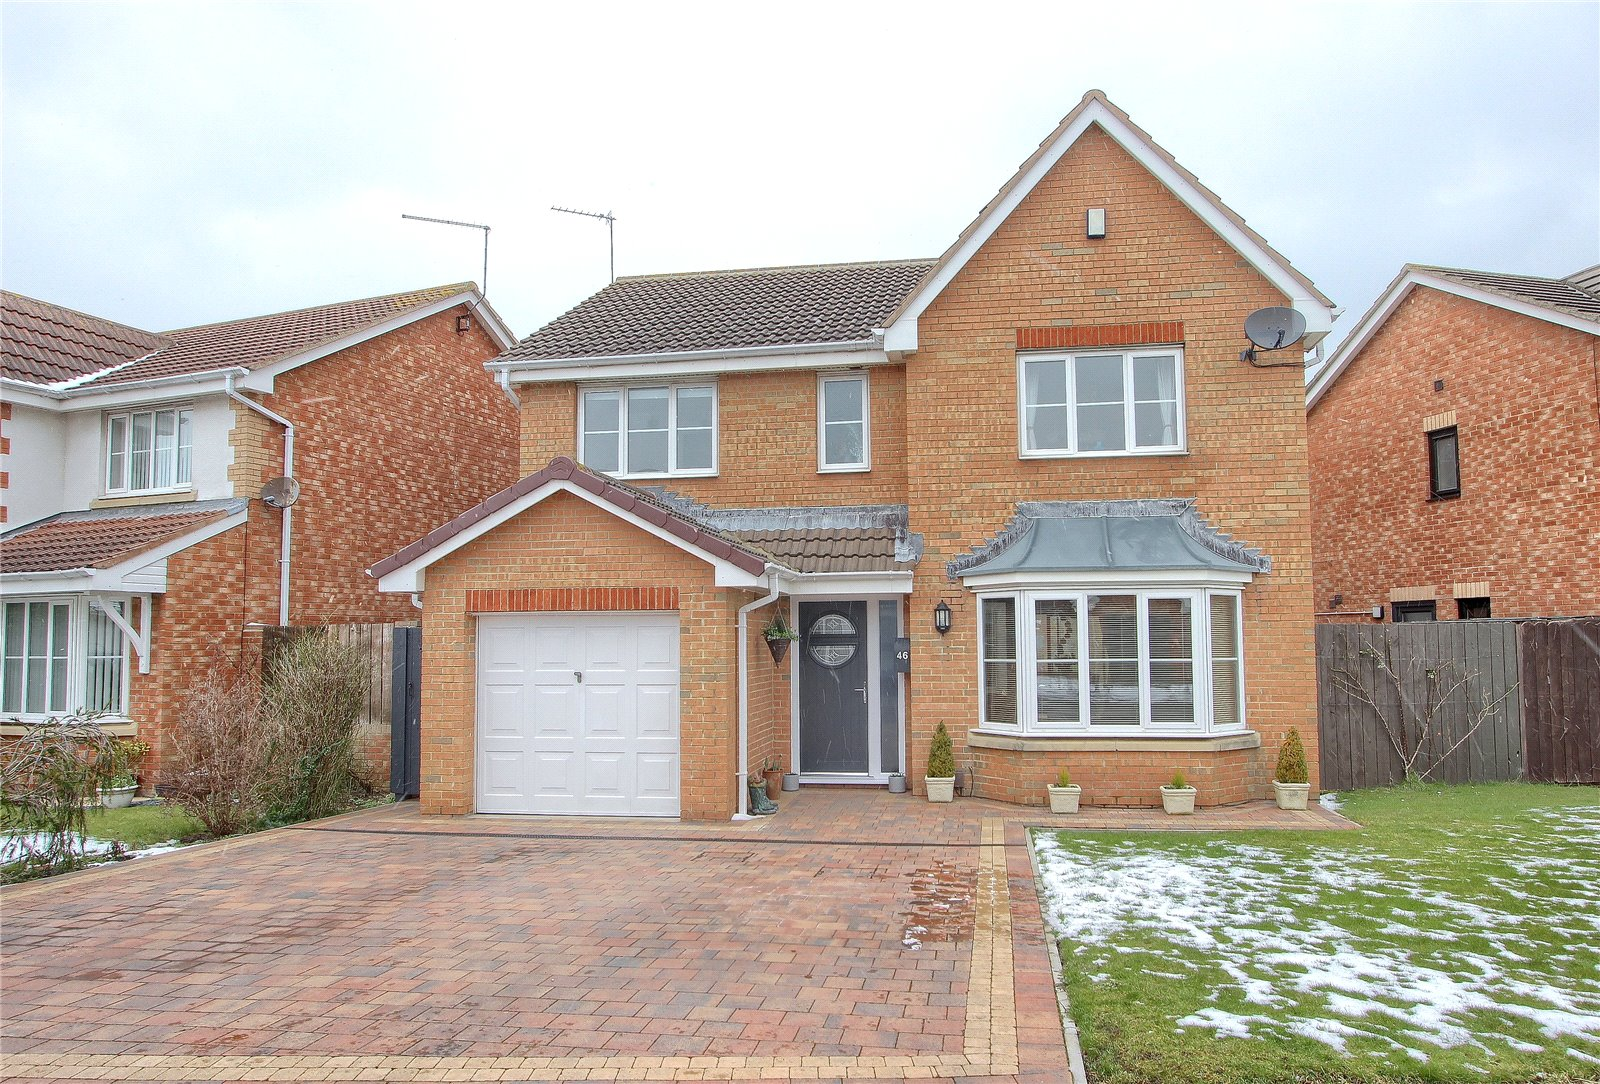 4 bed house for sale in Torcross Way, Redcar  - Property Image 1